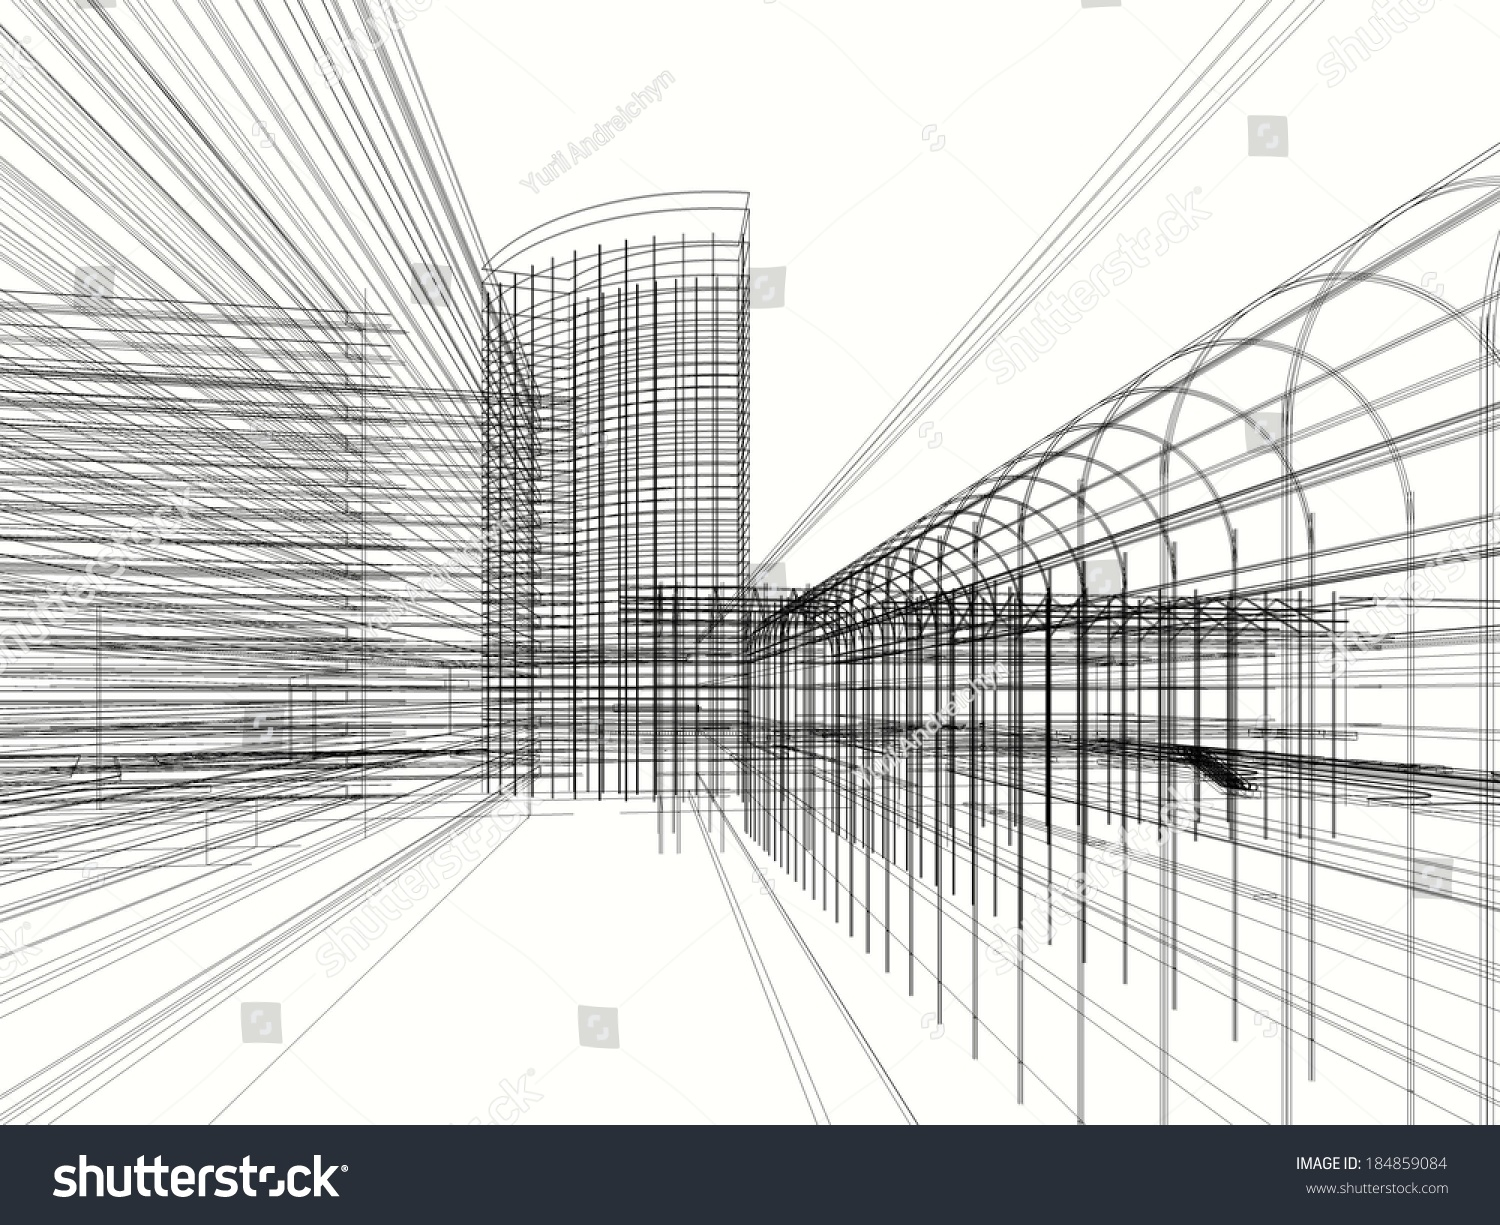 Architecture Drawing Wallpaper abstract architecture design wallpaper stock illustration